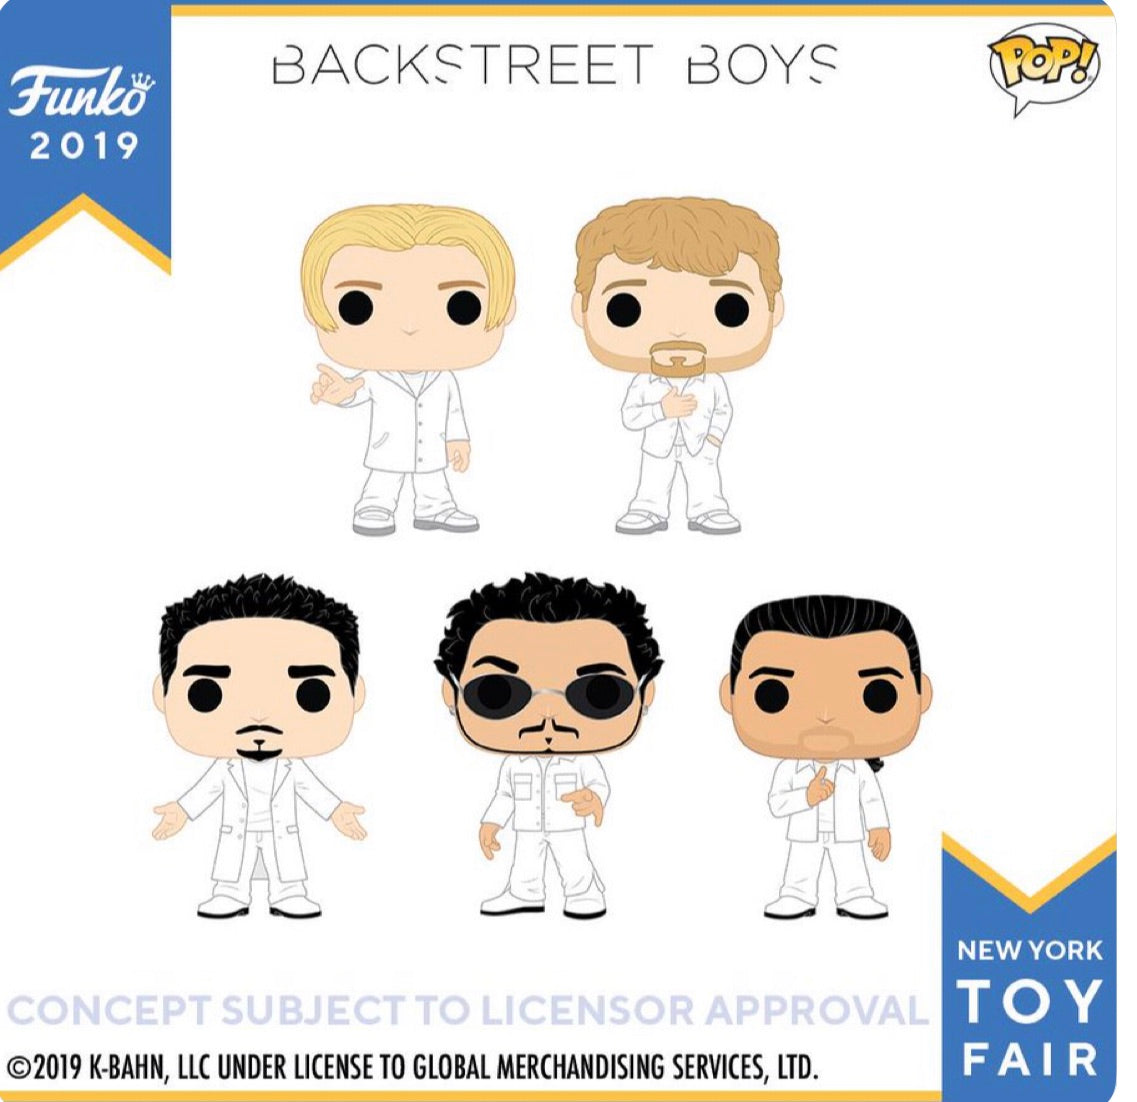 (Preorder) Pop!Rocks Backstreet Boys Set of 5